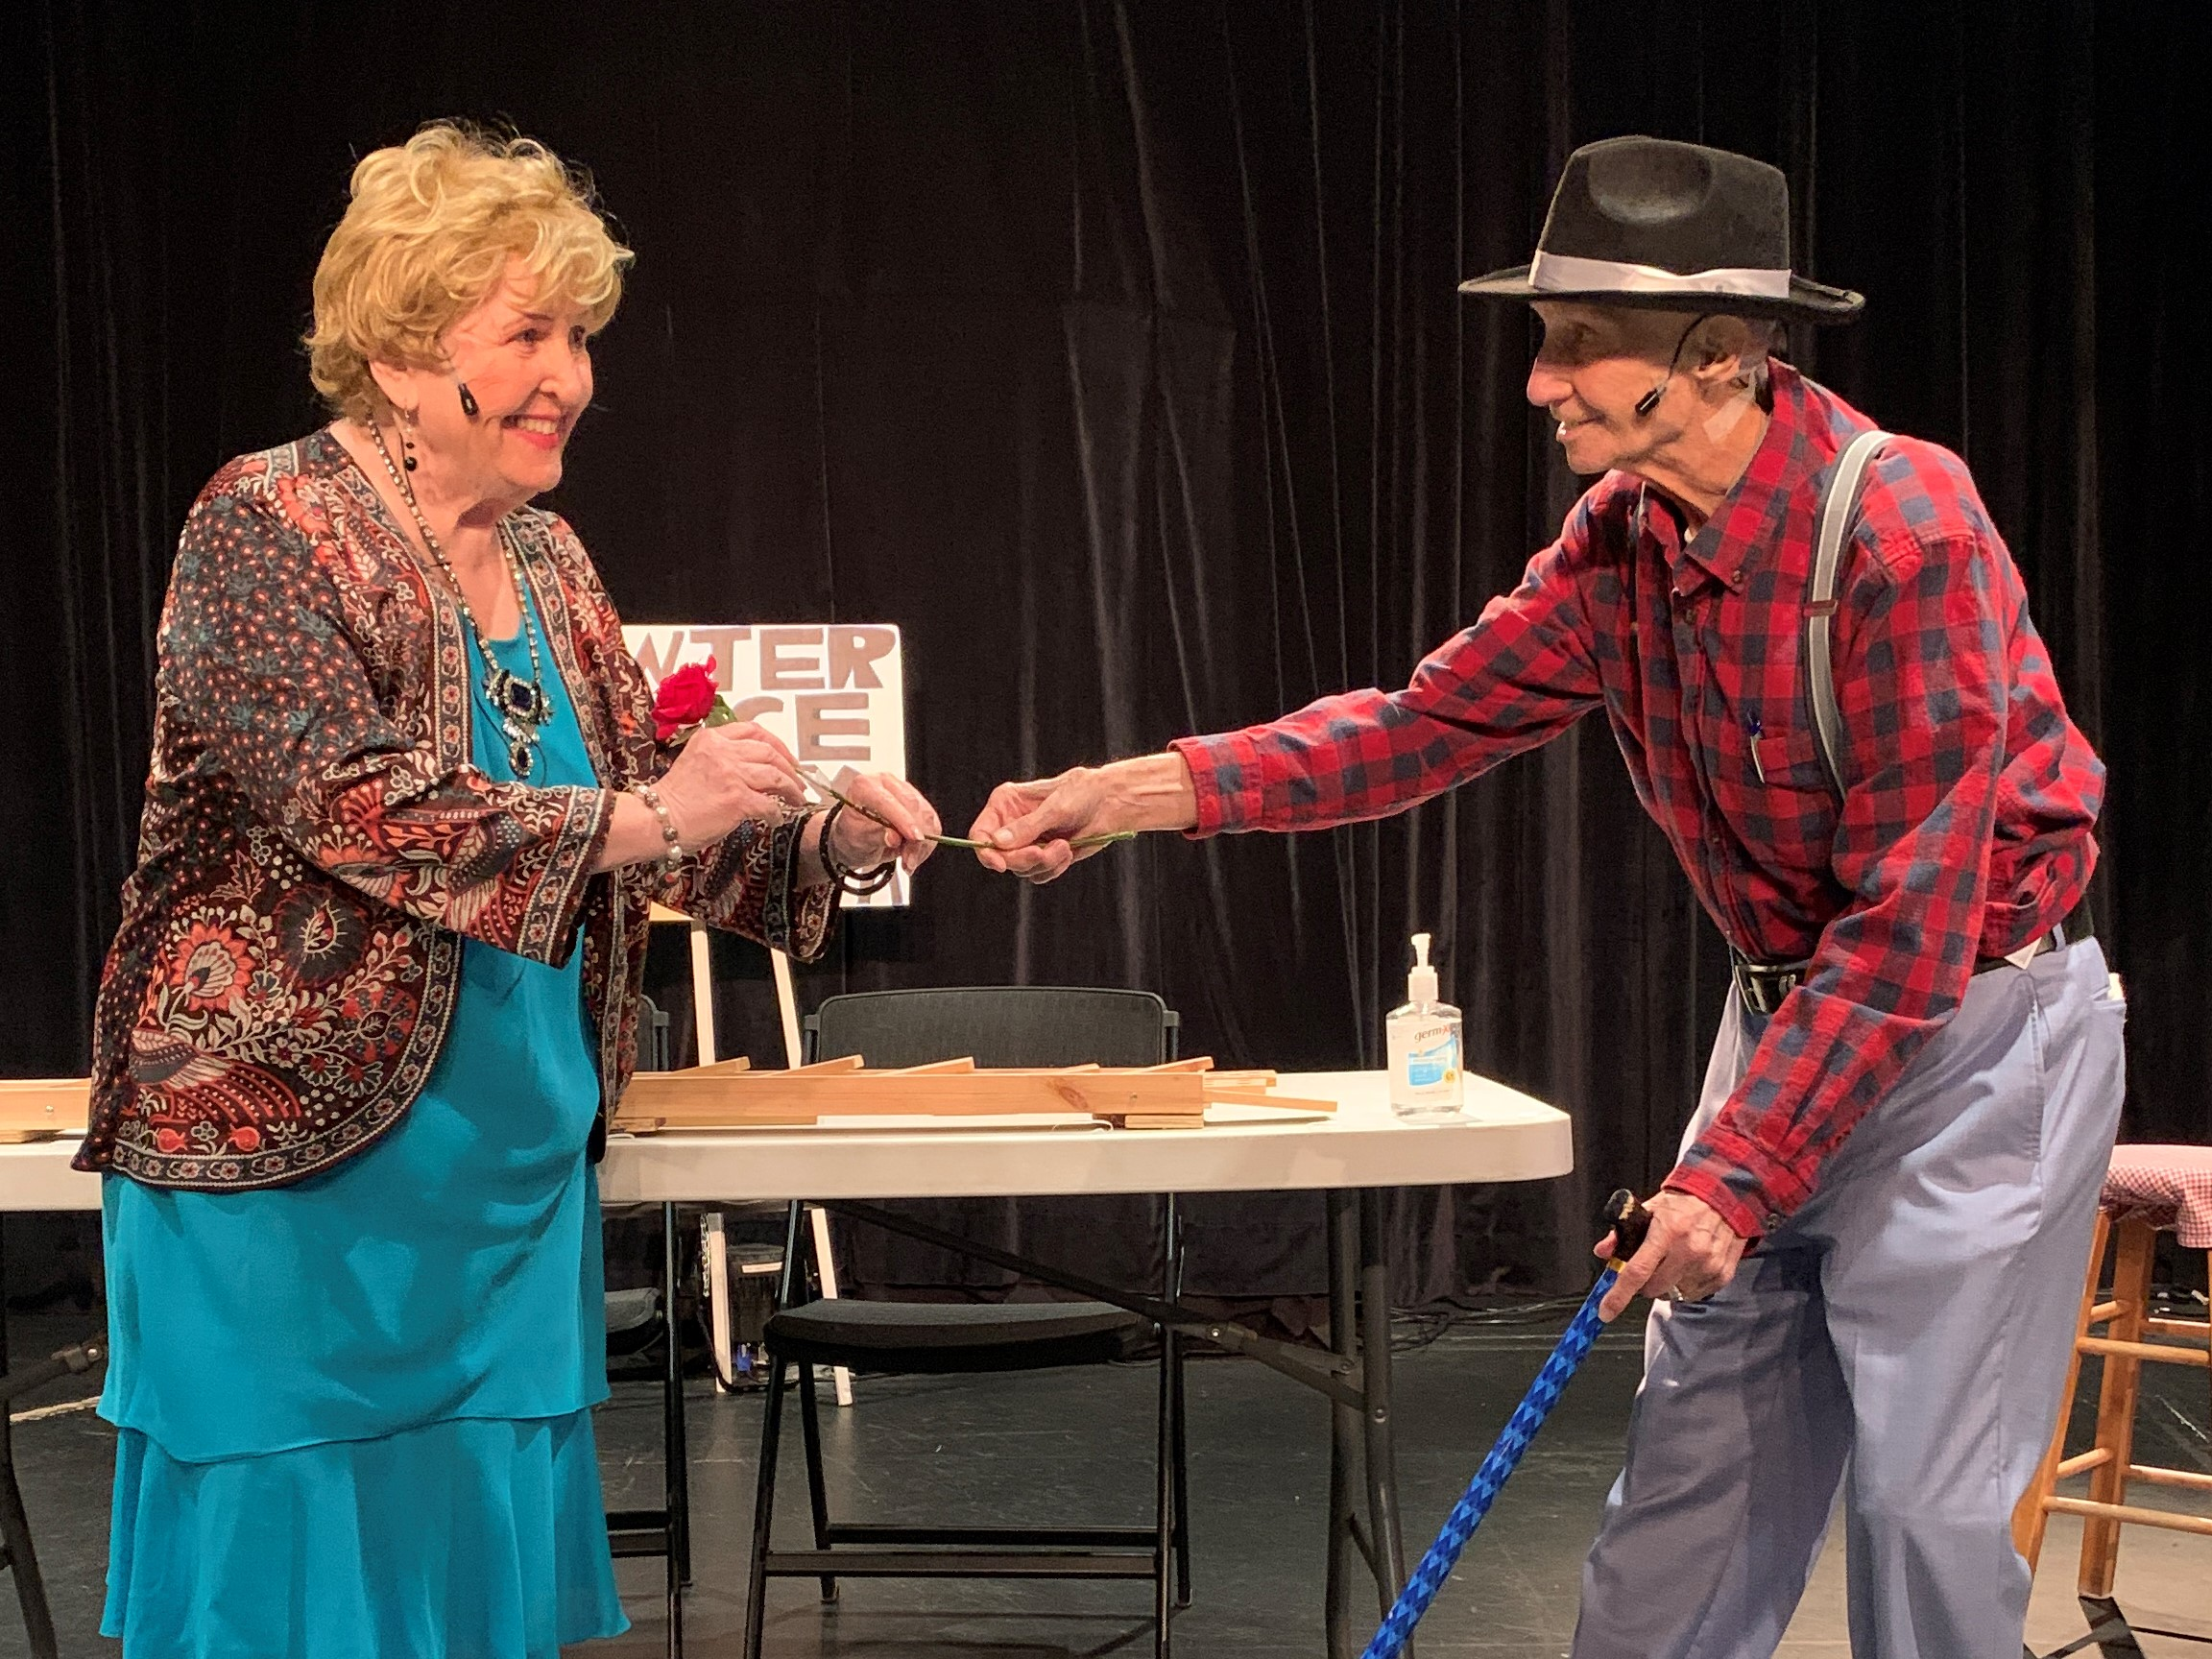 A photo of an older man and woman on a stage acting in character at a prop table.